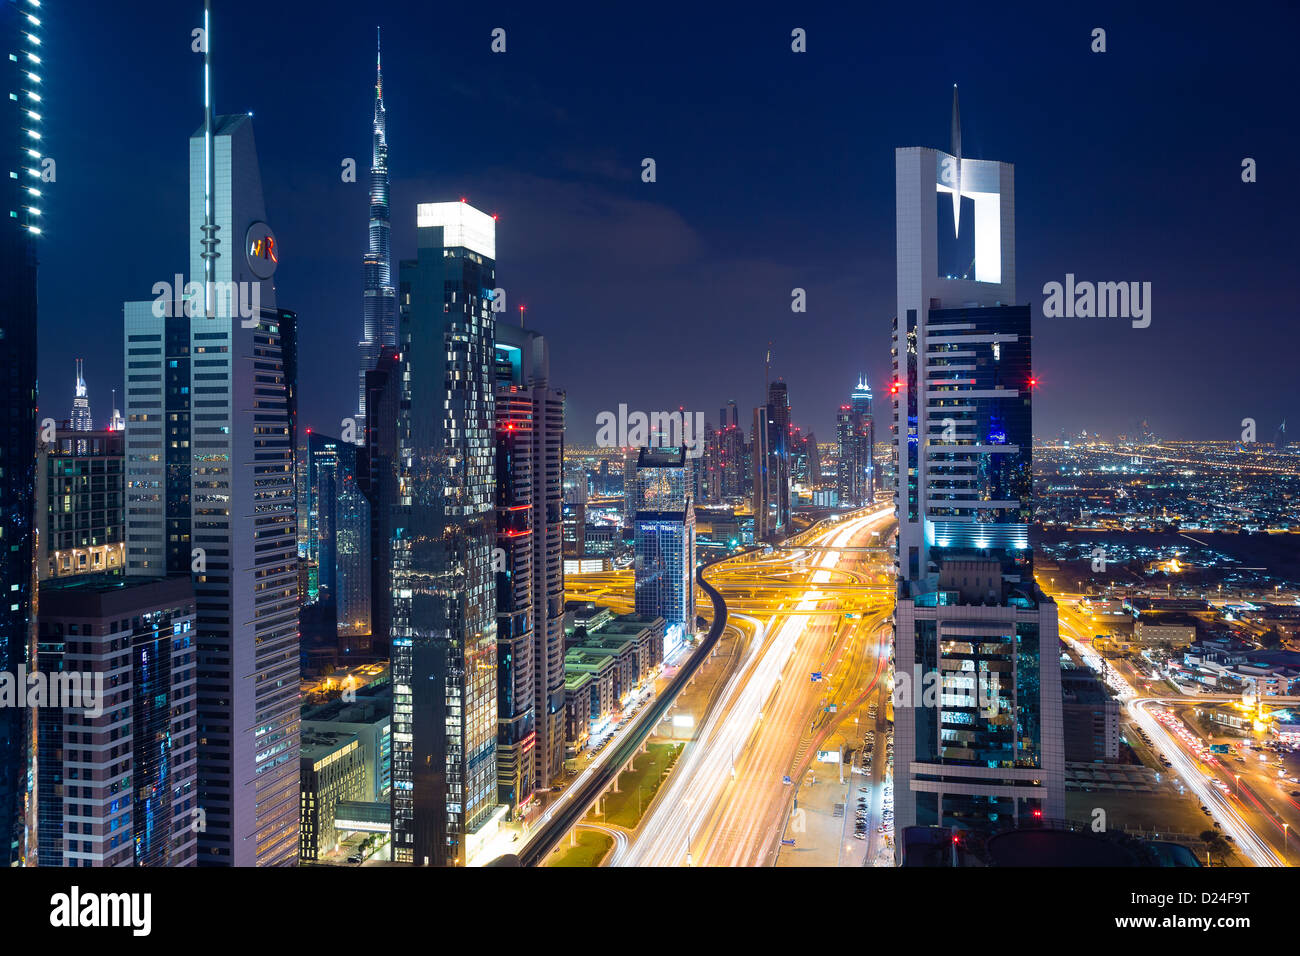 Dubai modern city skyline view at sunset, night with copy space. View from rooftop looking downtown Sheik Zayed - Stock Image